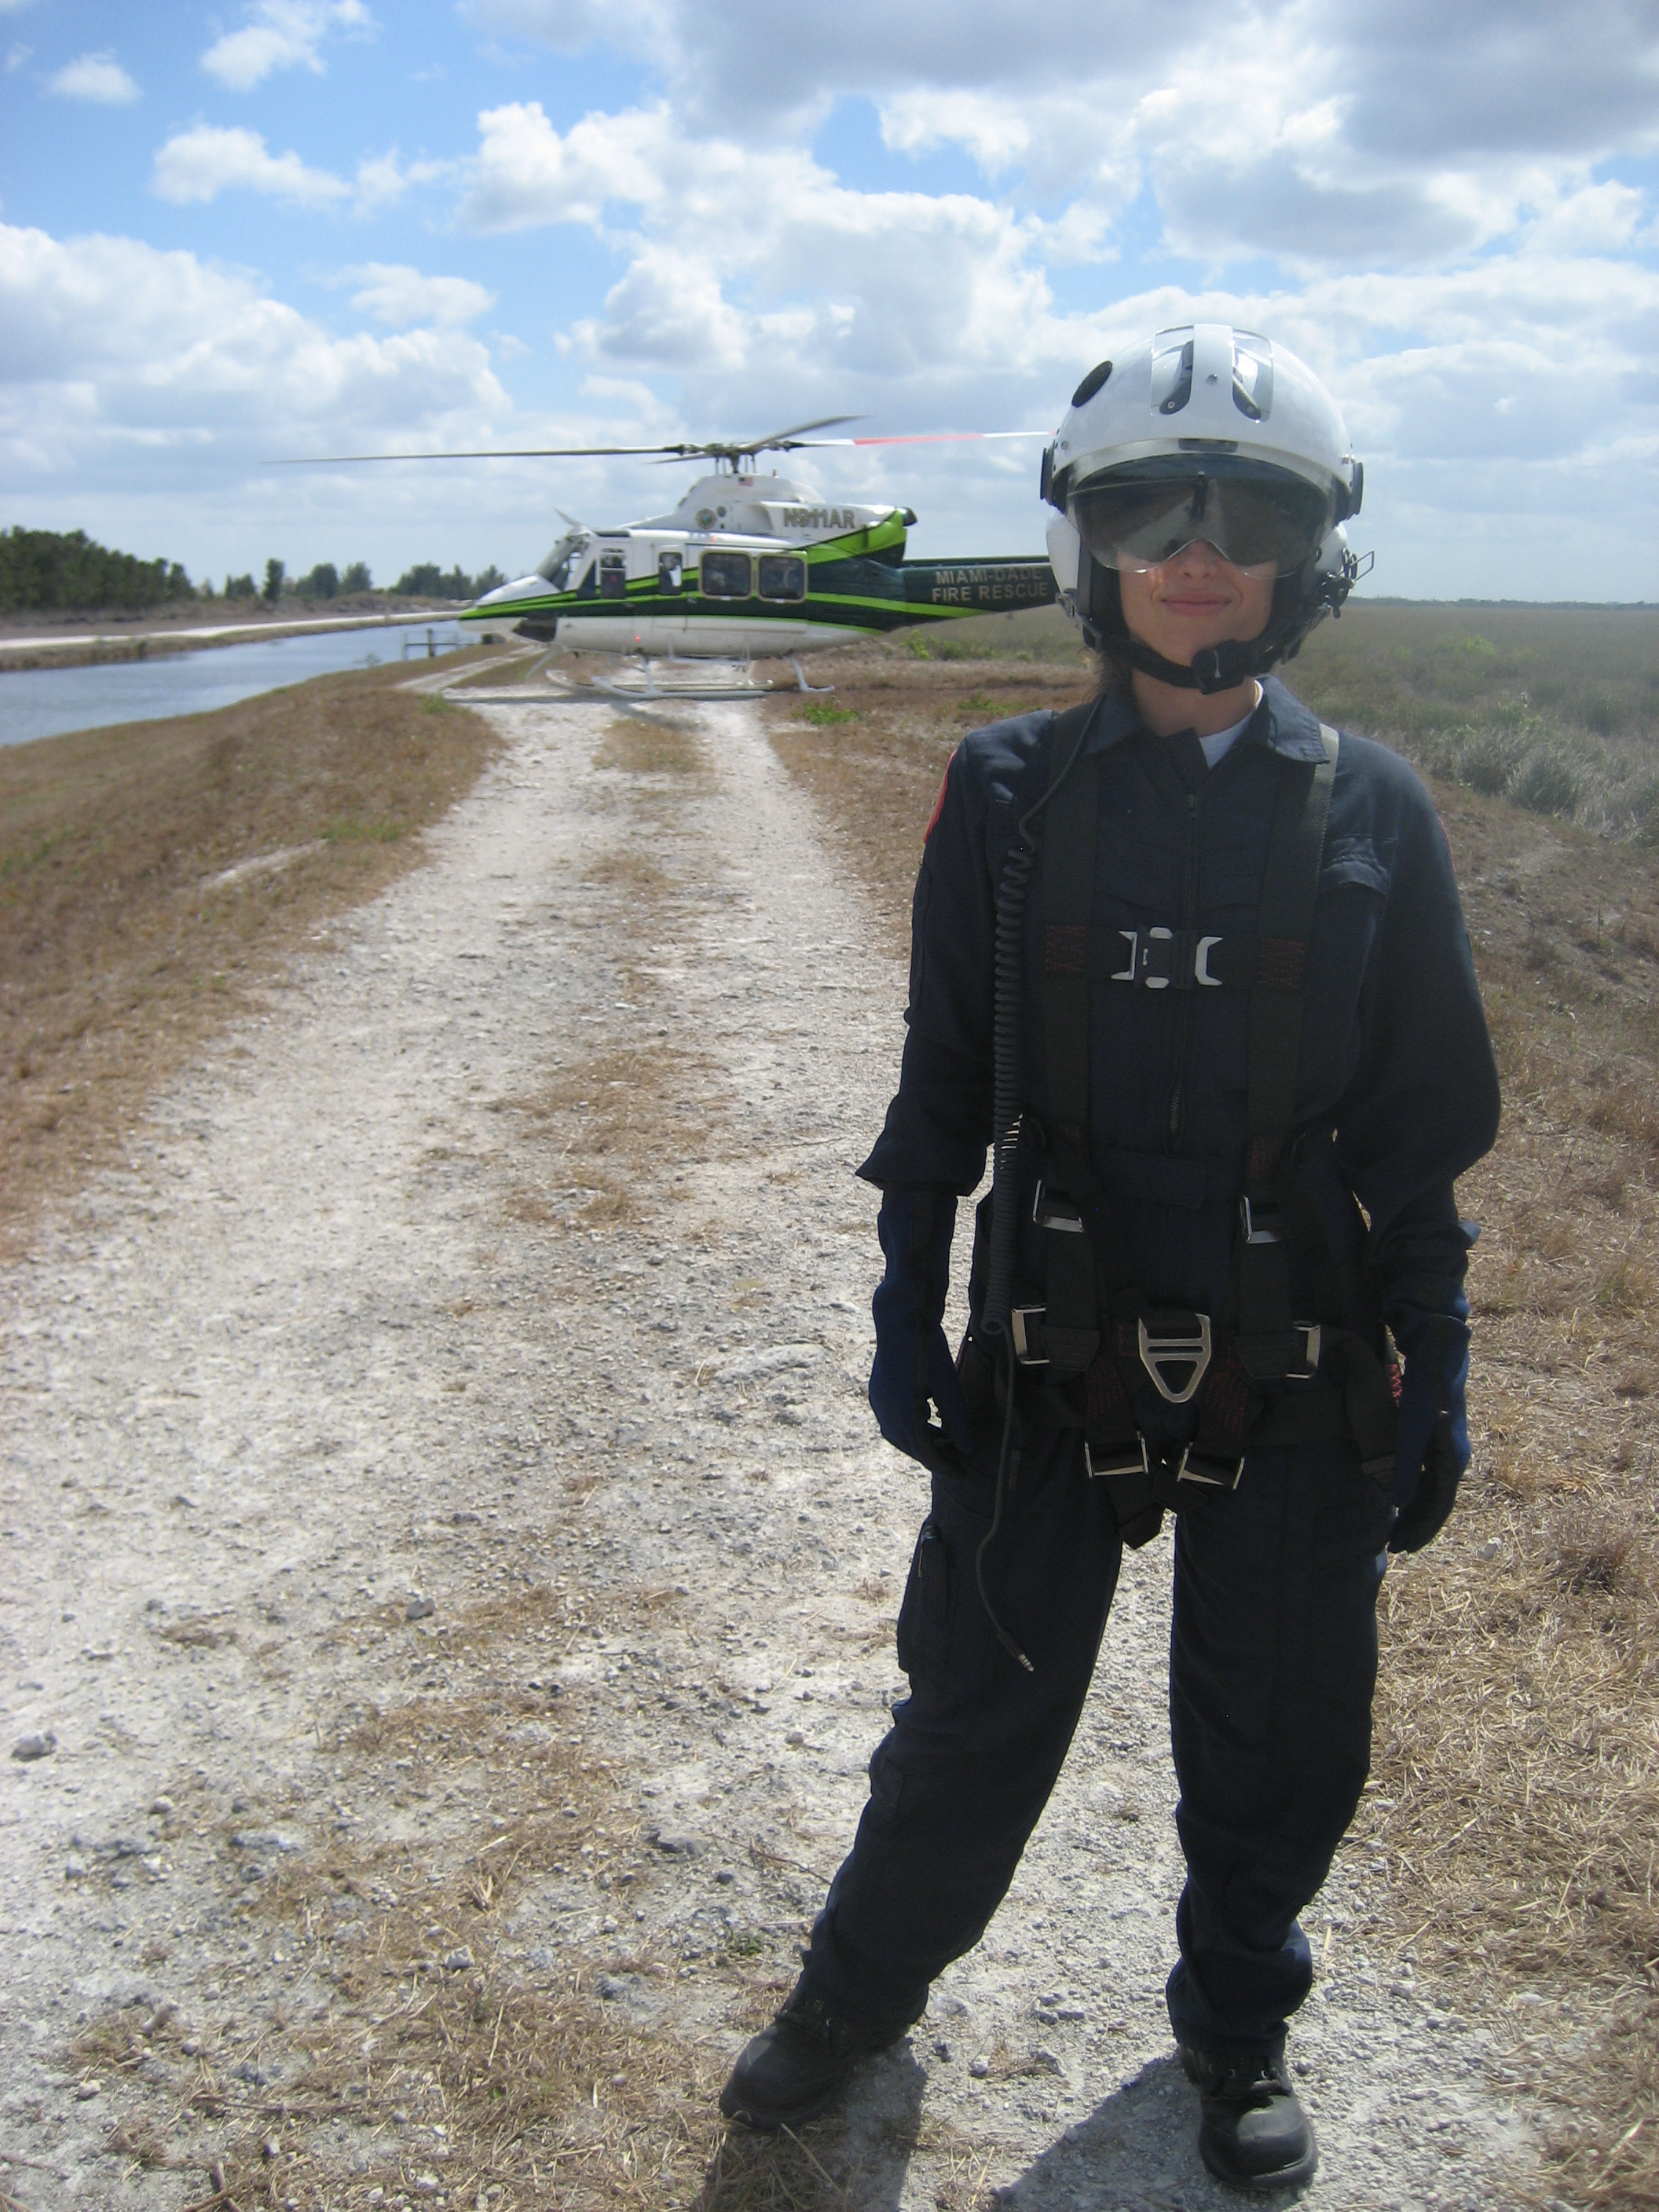 Portrait of a leader: Haff in front of her helicopter.